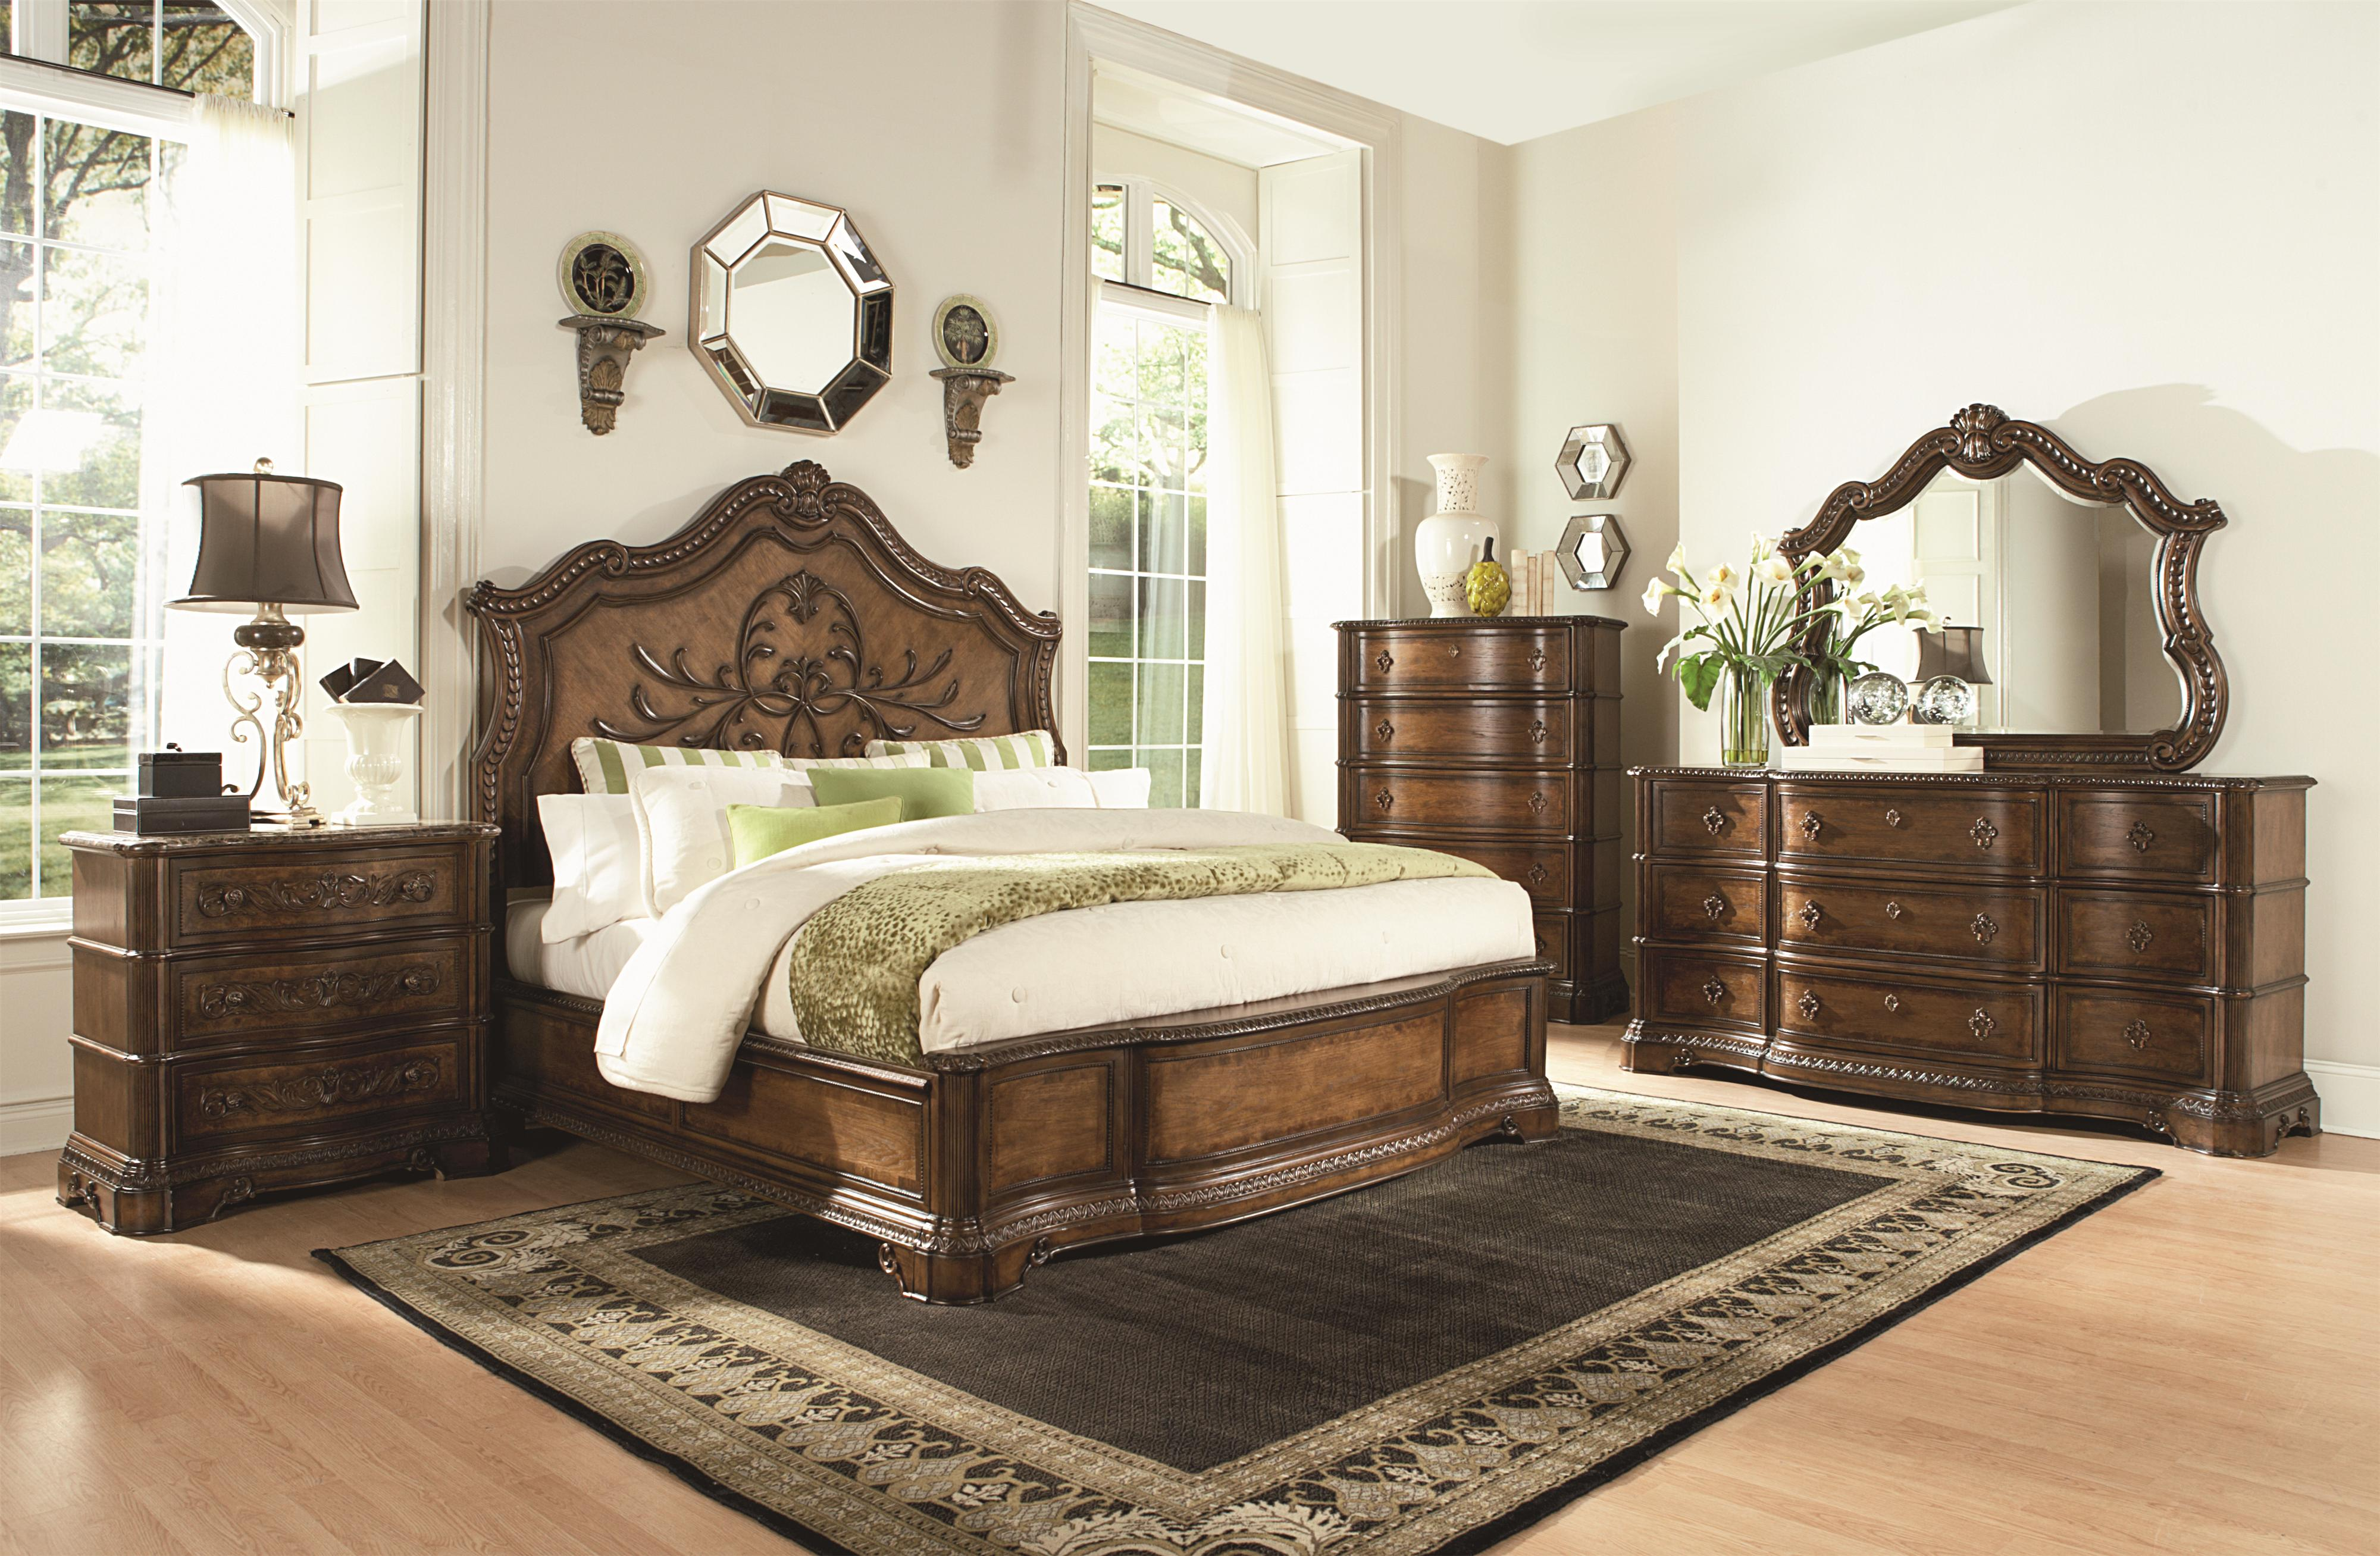 Legacy Classic Pemberleigh Queen Bedroom Group - Item Number: 3100 Q Bedroom Group 2